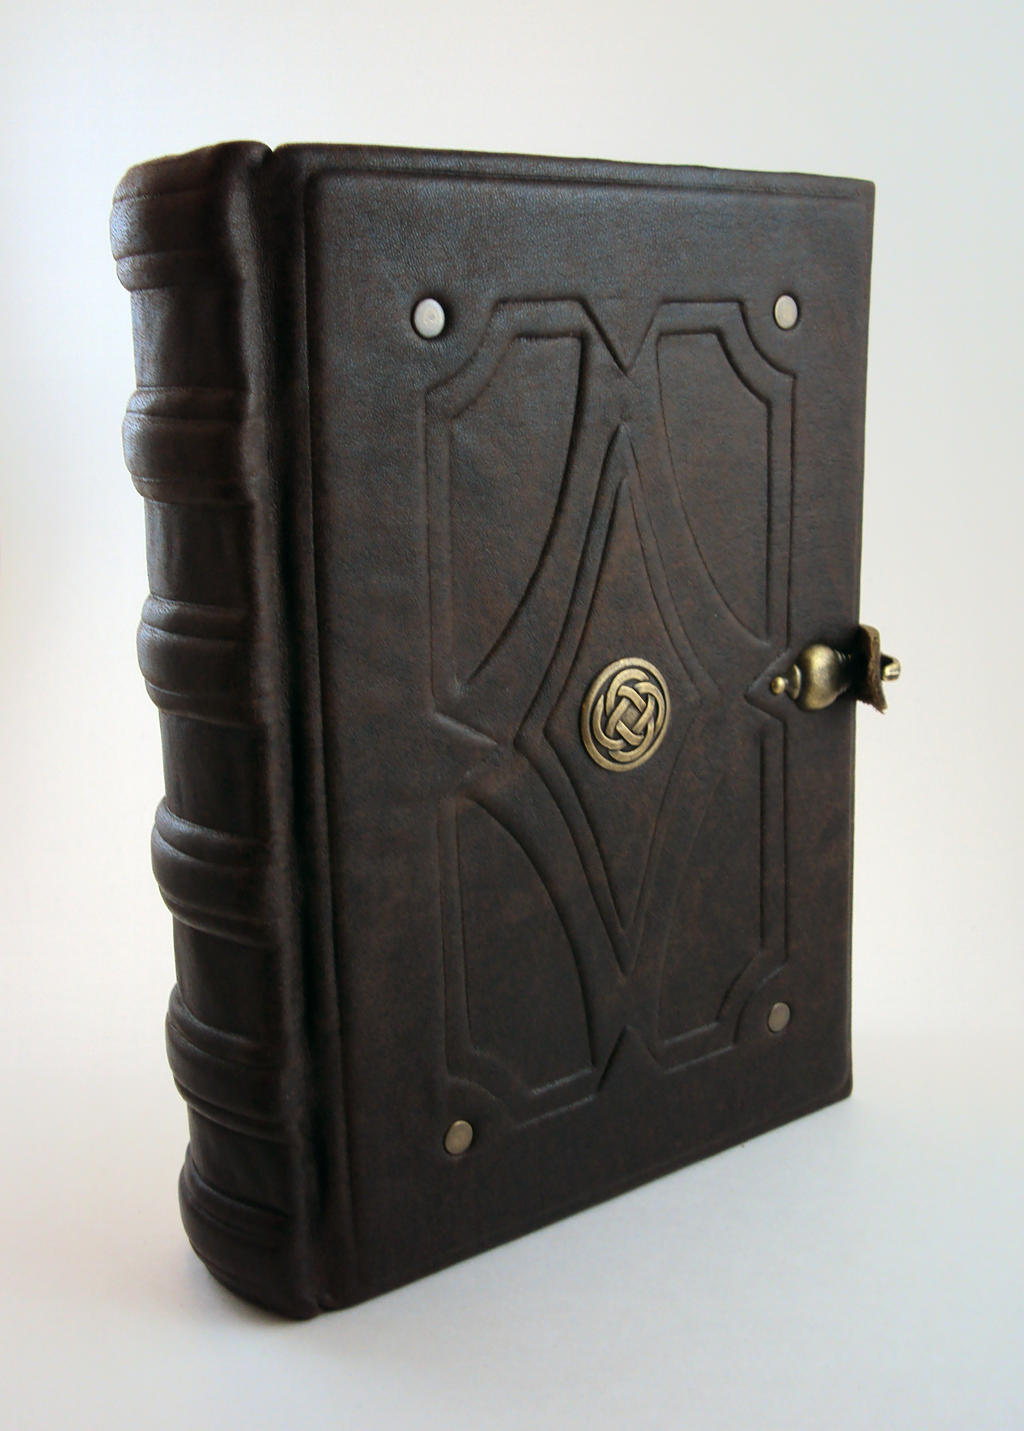 Antique celtic book by MilleCuirs